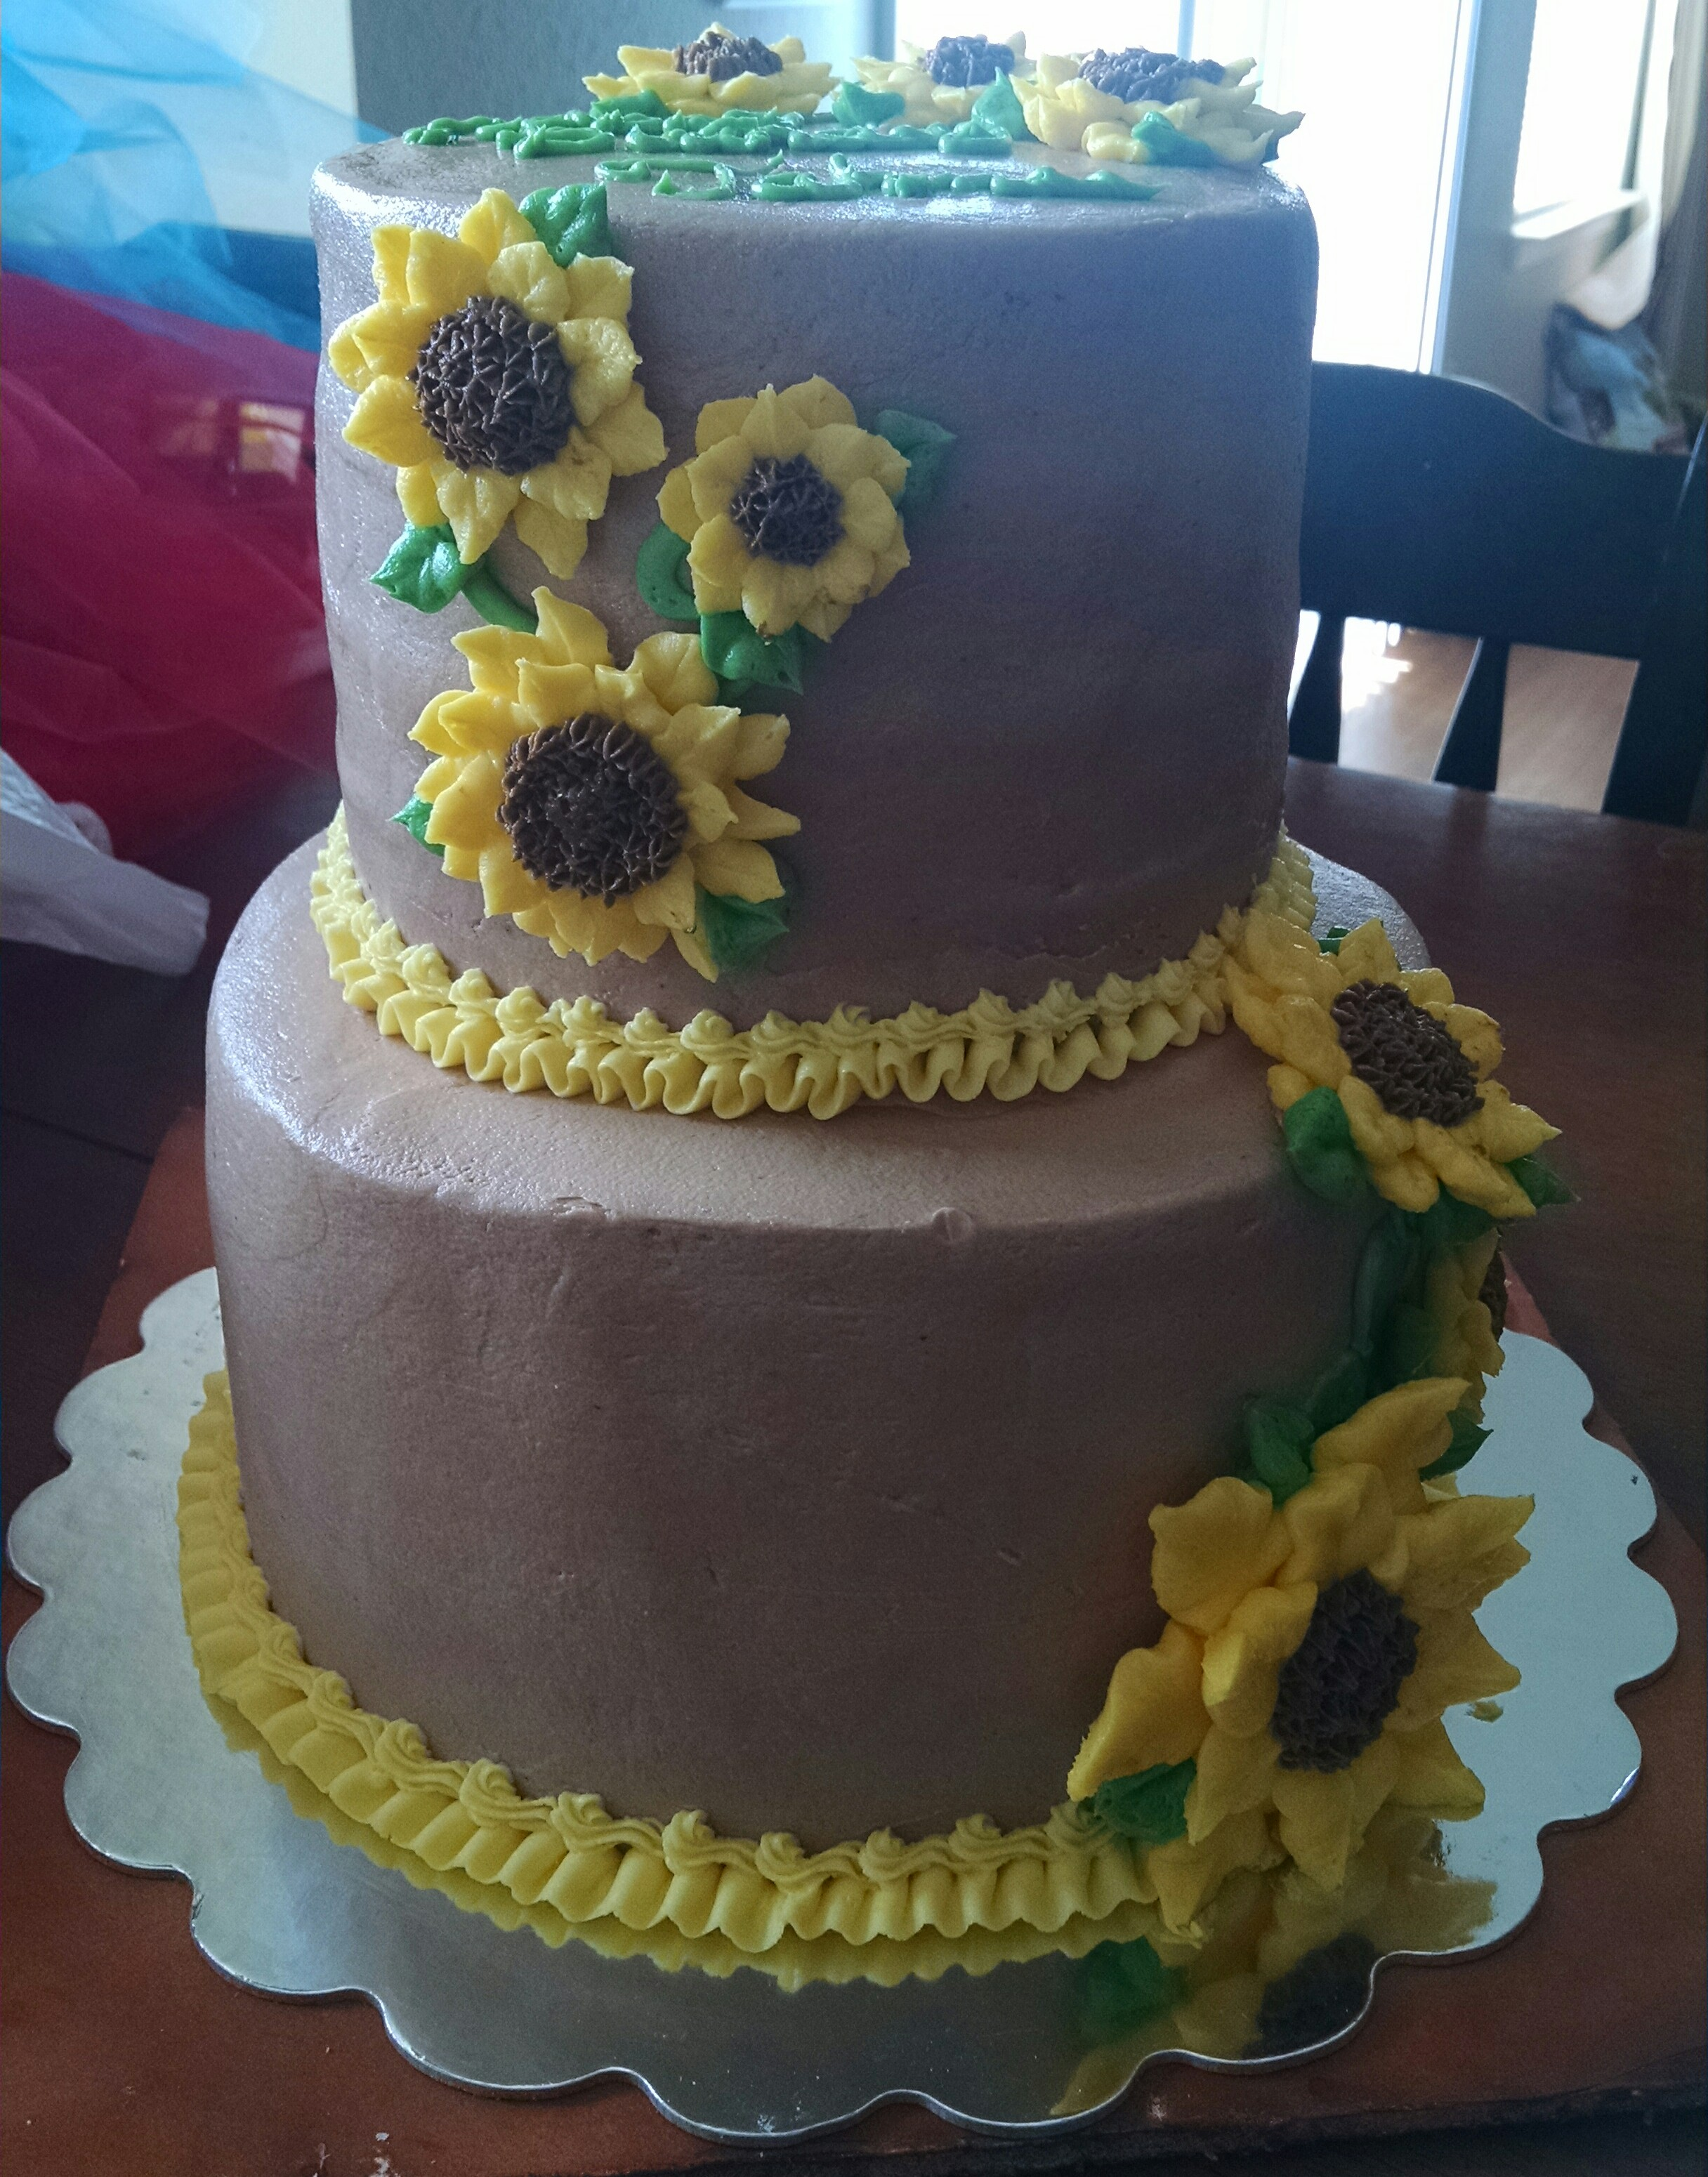 Newly Wed Cakes - Bakery List